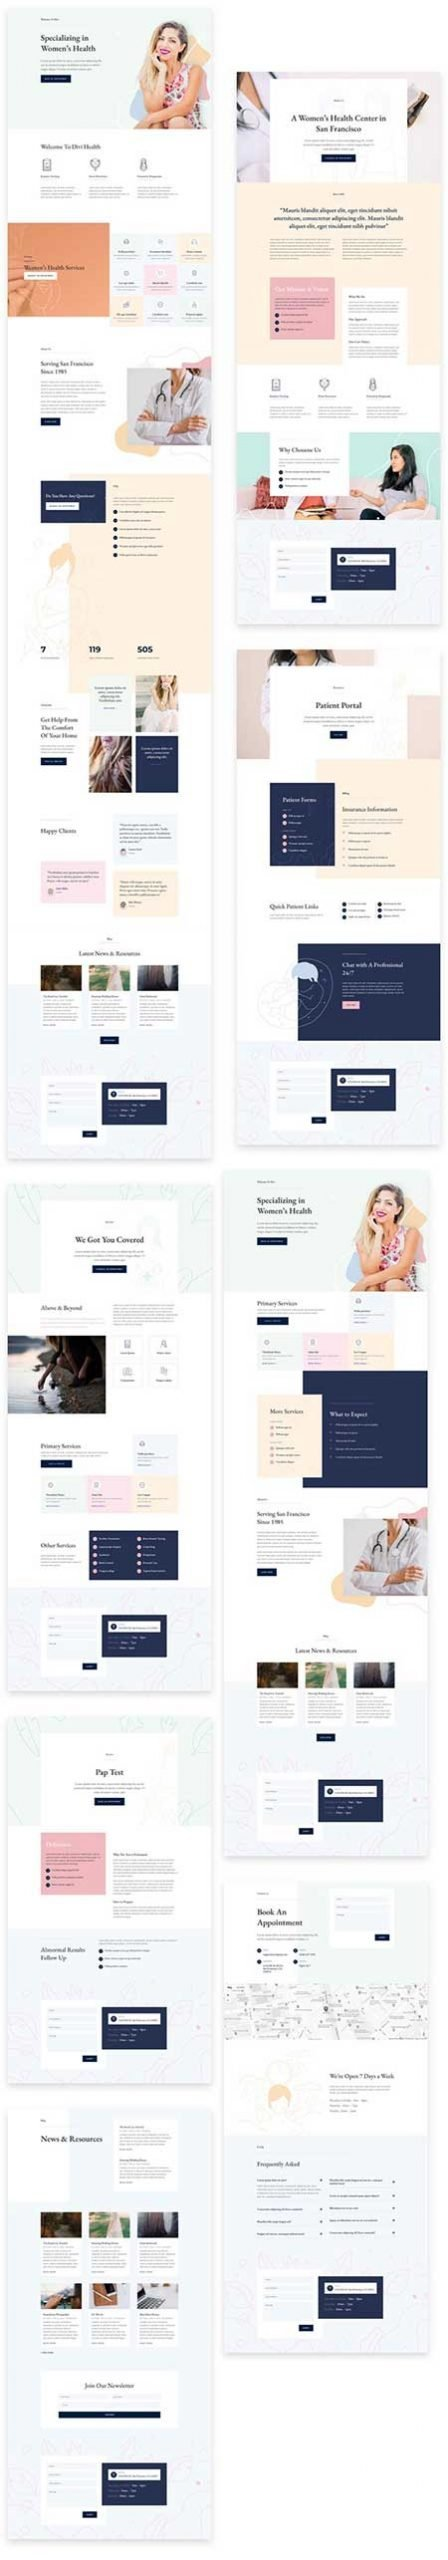 Divi layout for women's medical center